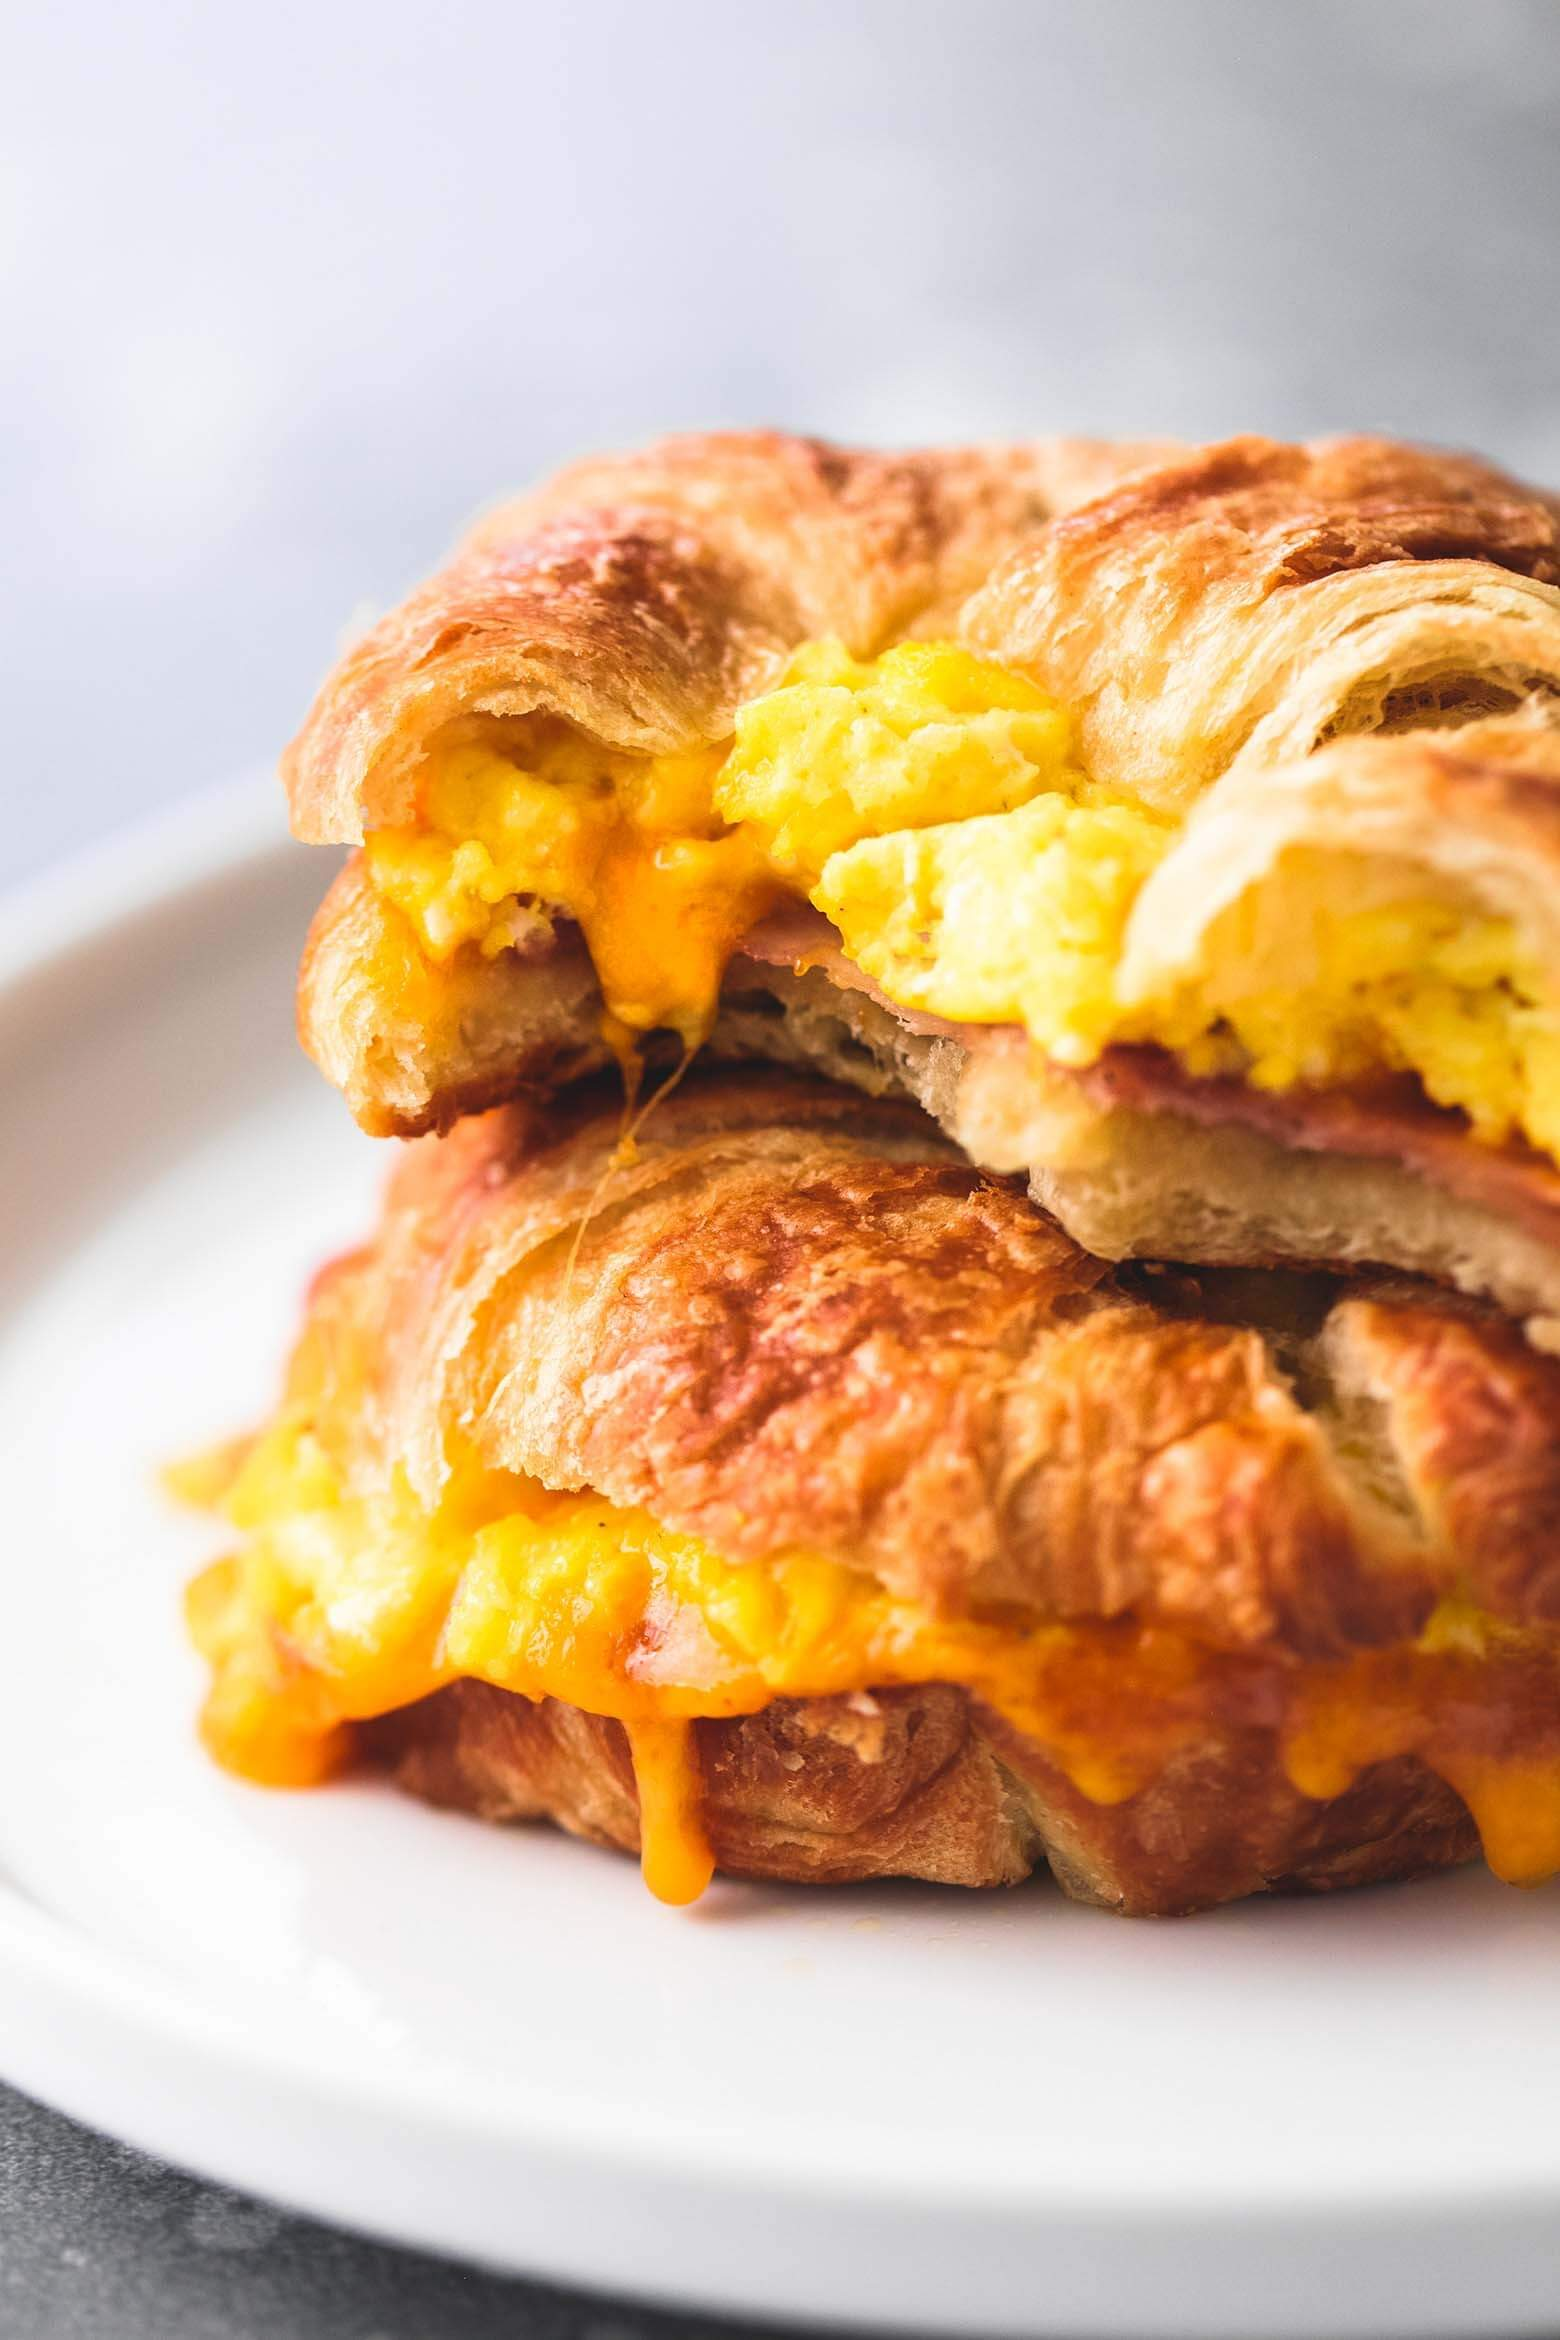 Baked Croissant Breakfast Sandwiches